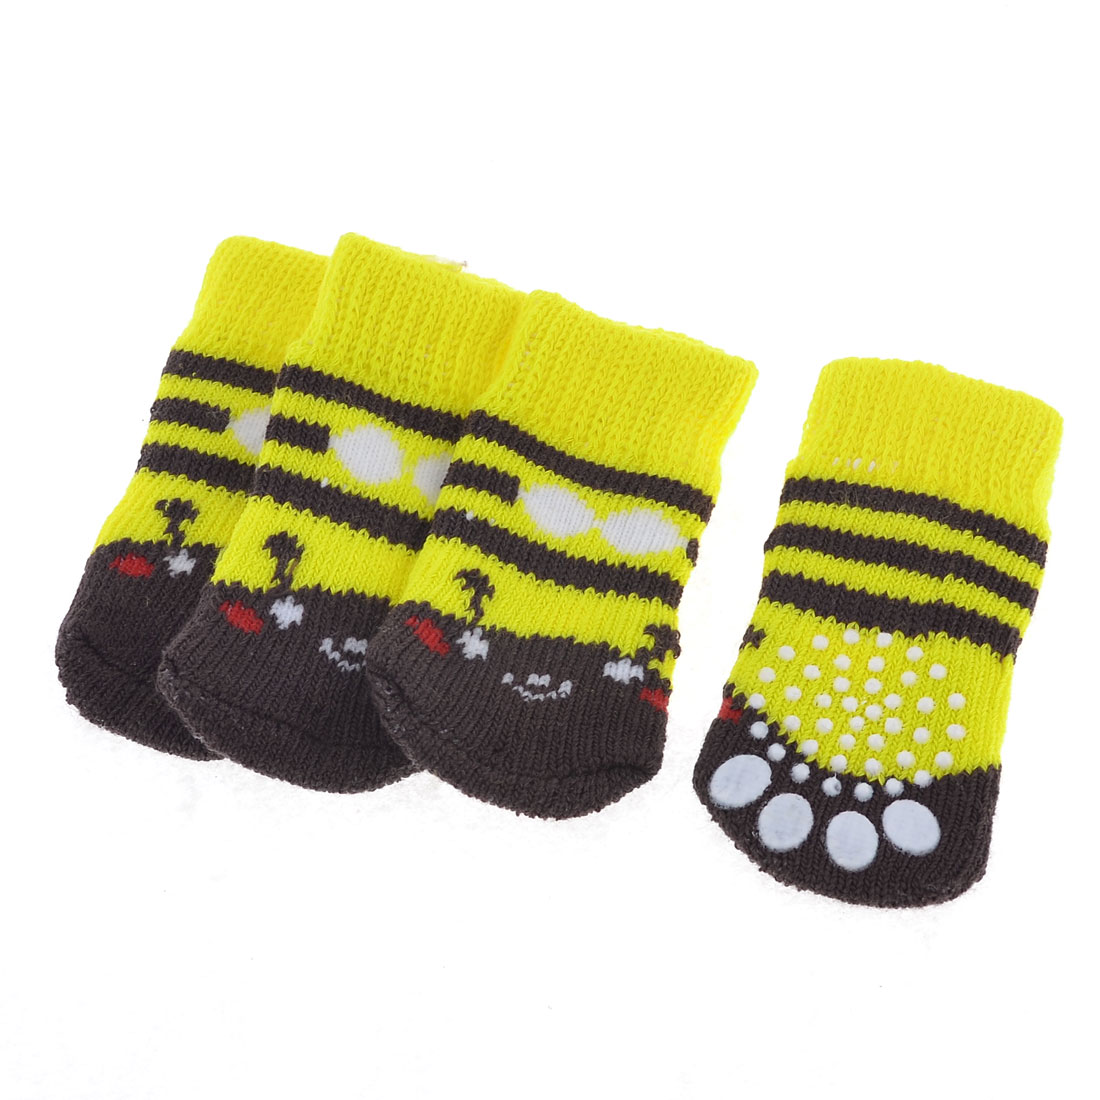 Pet Dog Doggy Cat Yellow Knitted Stripe Paw Pattern Elastic Socks M 2 Pairs